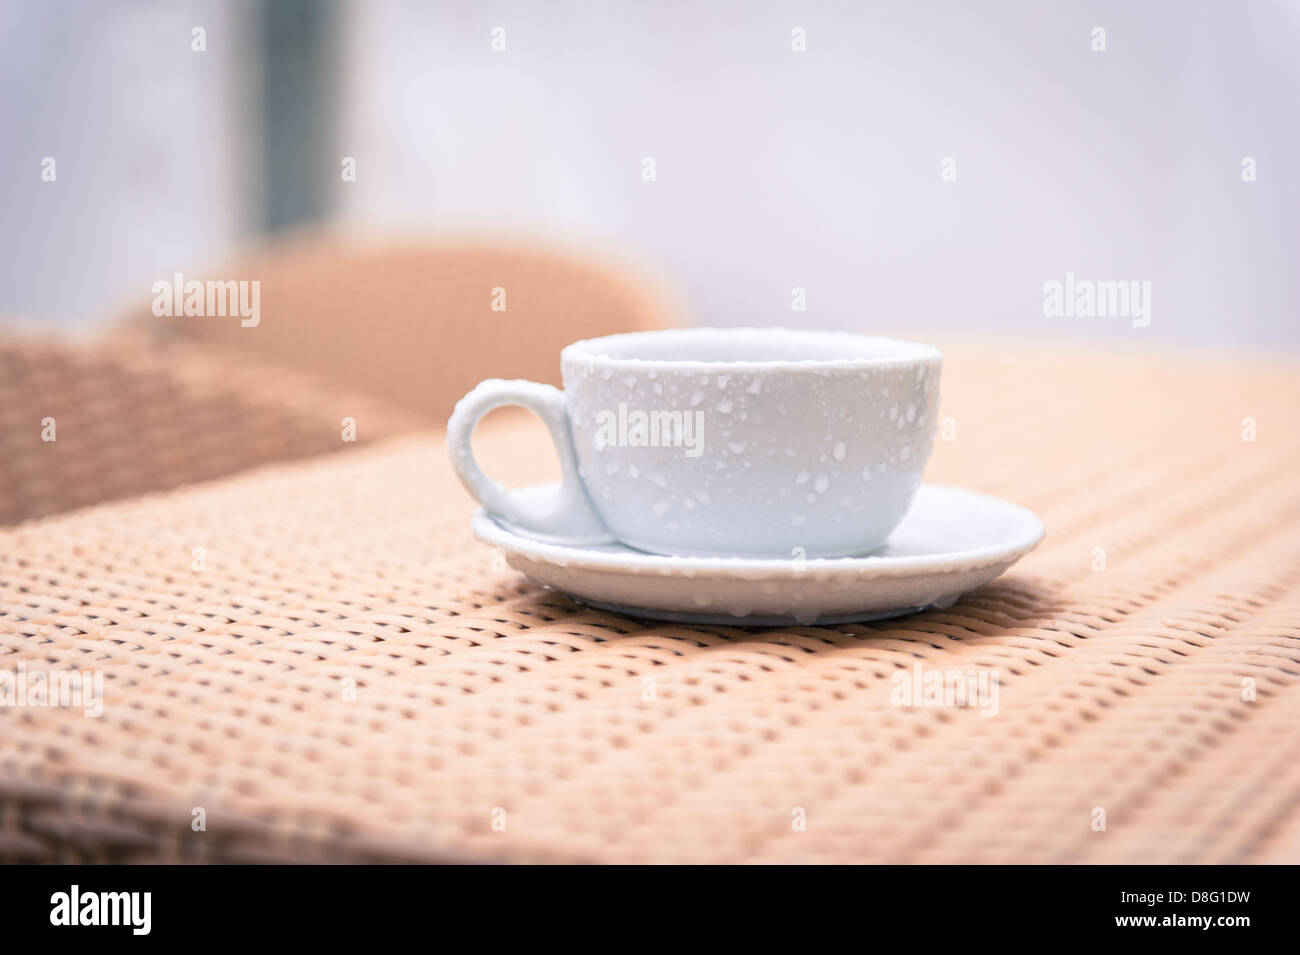 a-cup-and-saucer-left-out-in-the-rain-at